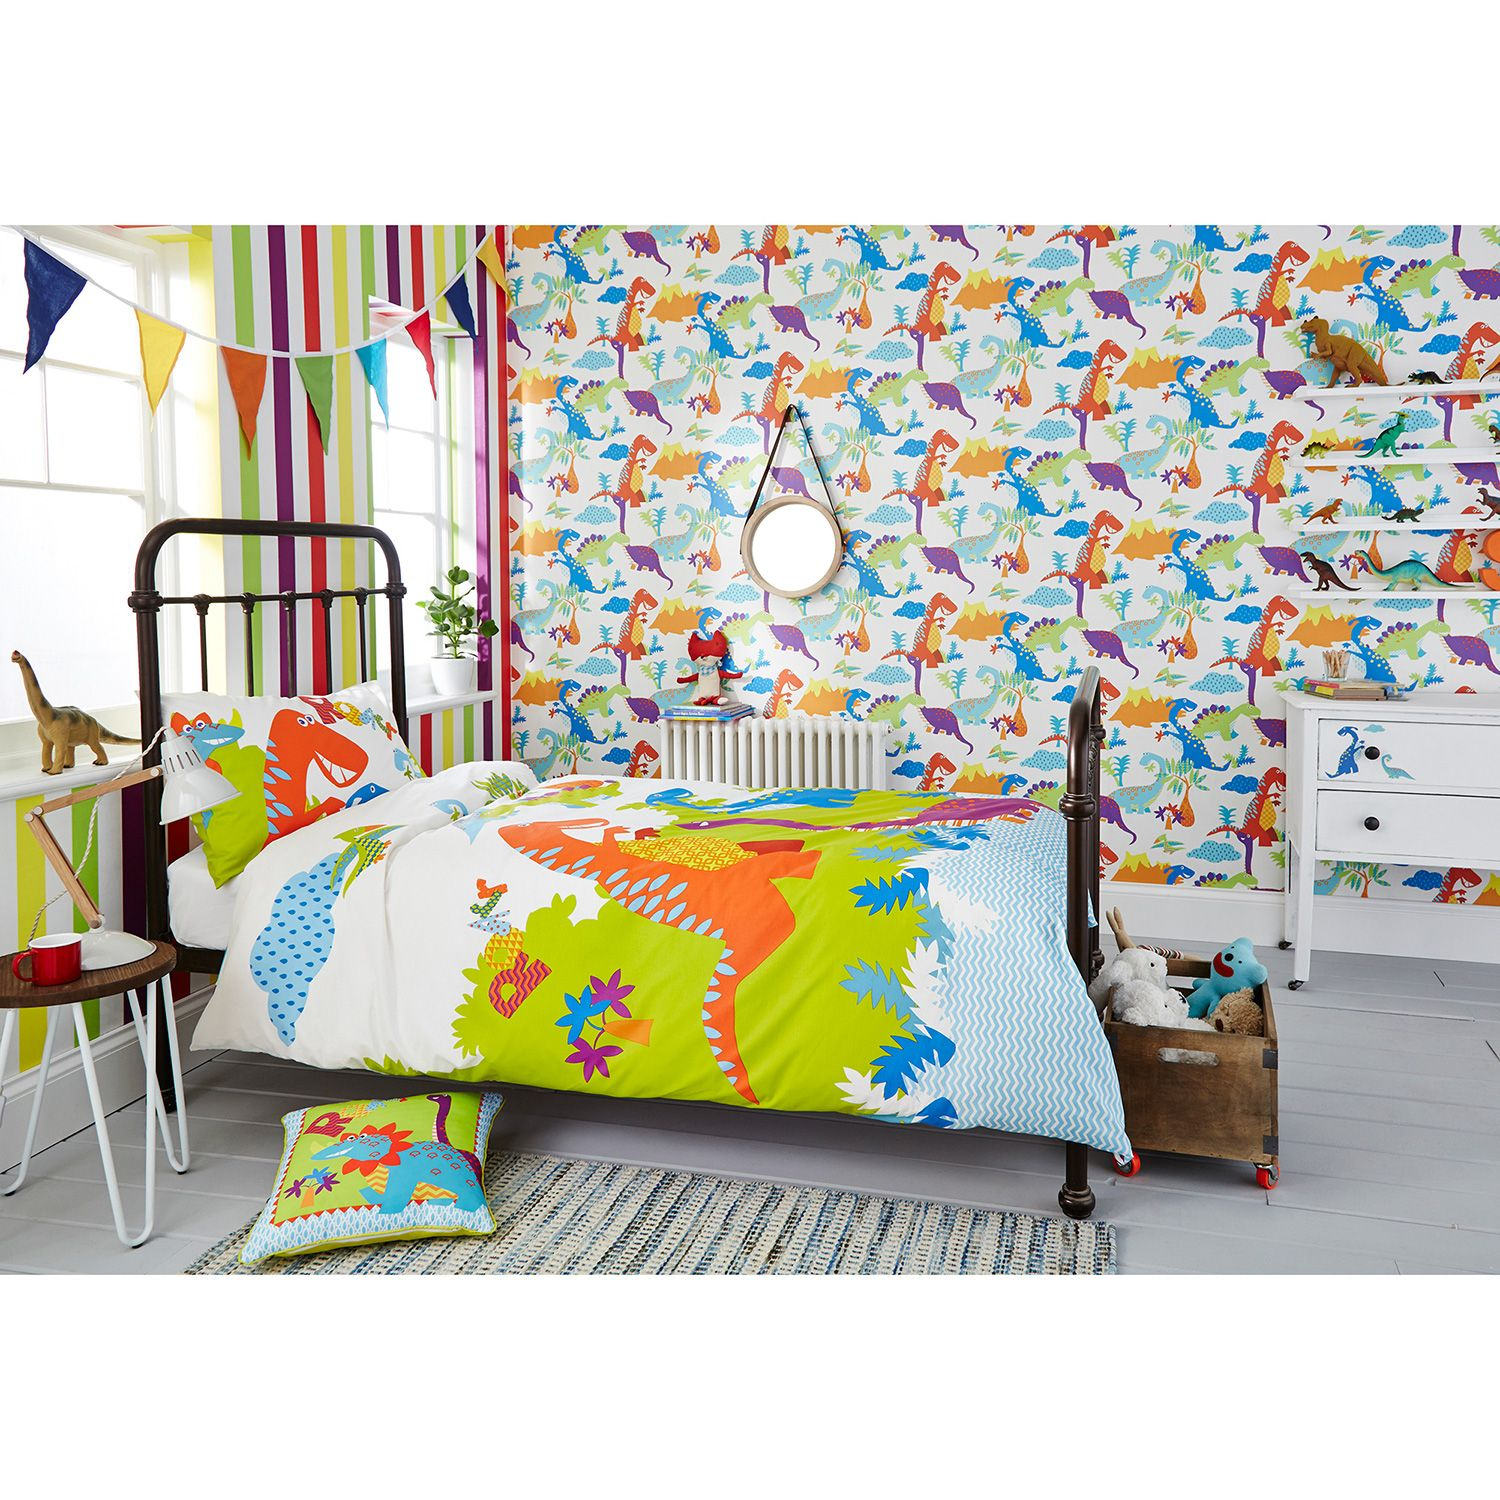 Graham & Brown Kids Bedroom Bright Dinosaurs Wallpaper House of